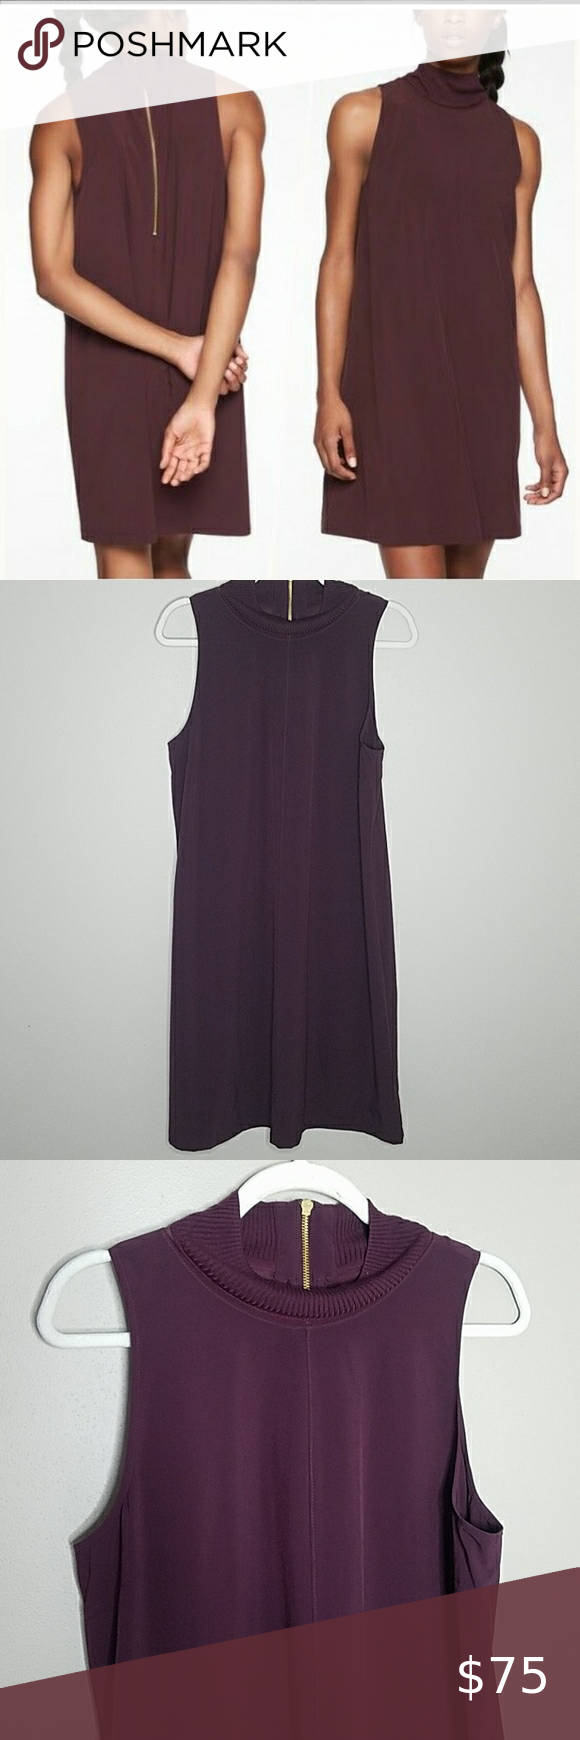 Athleta Initiative Dress, Size LT Athleta Initiative Dress, Size LT in Auberge   FOR: Commuting, work and travel  FEEL: Recycled Featherweight Stretch™ fabric feels sleek and light as air  FAVE: Rib and mesh details at neckline provide comfort and airflow  Ribbed details along neckline for added comfort  Mesh details for extra ventilation  Measures approximately 39